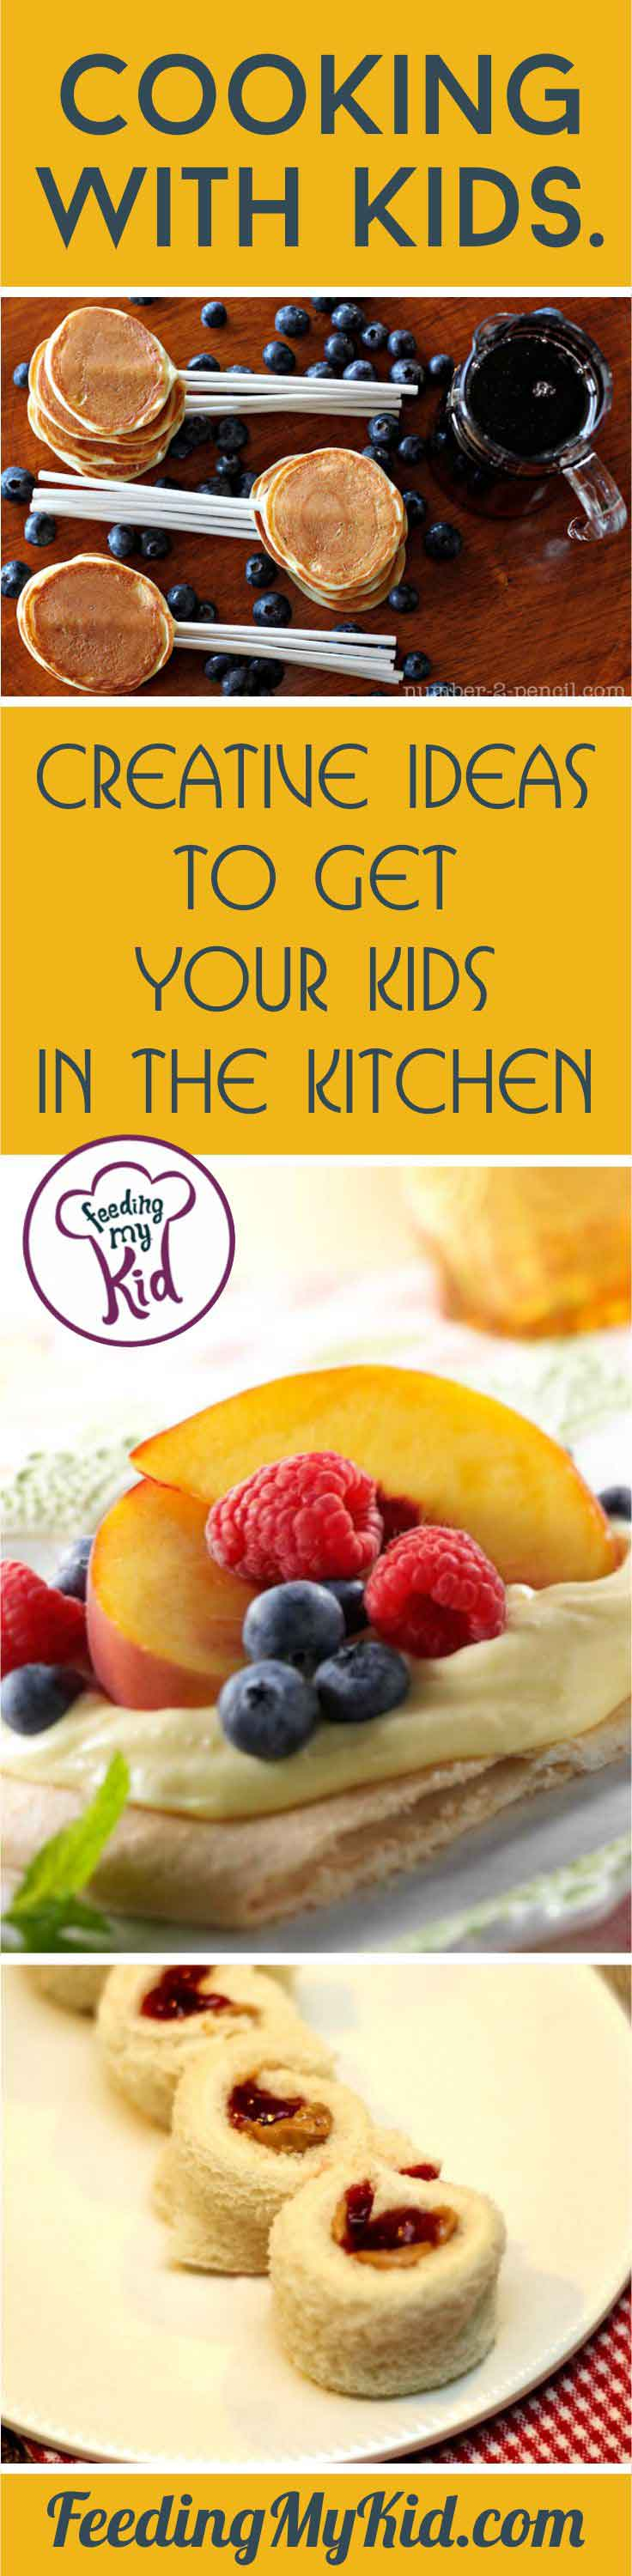 Cooking with kids is a great way to build healthy habits for their future. Check out these fun recipes you and your kids can create together.